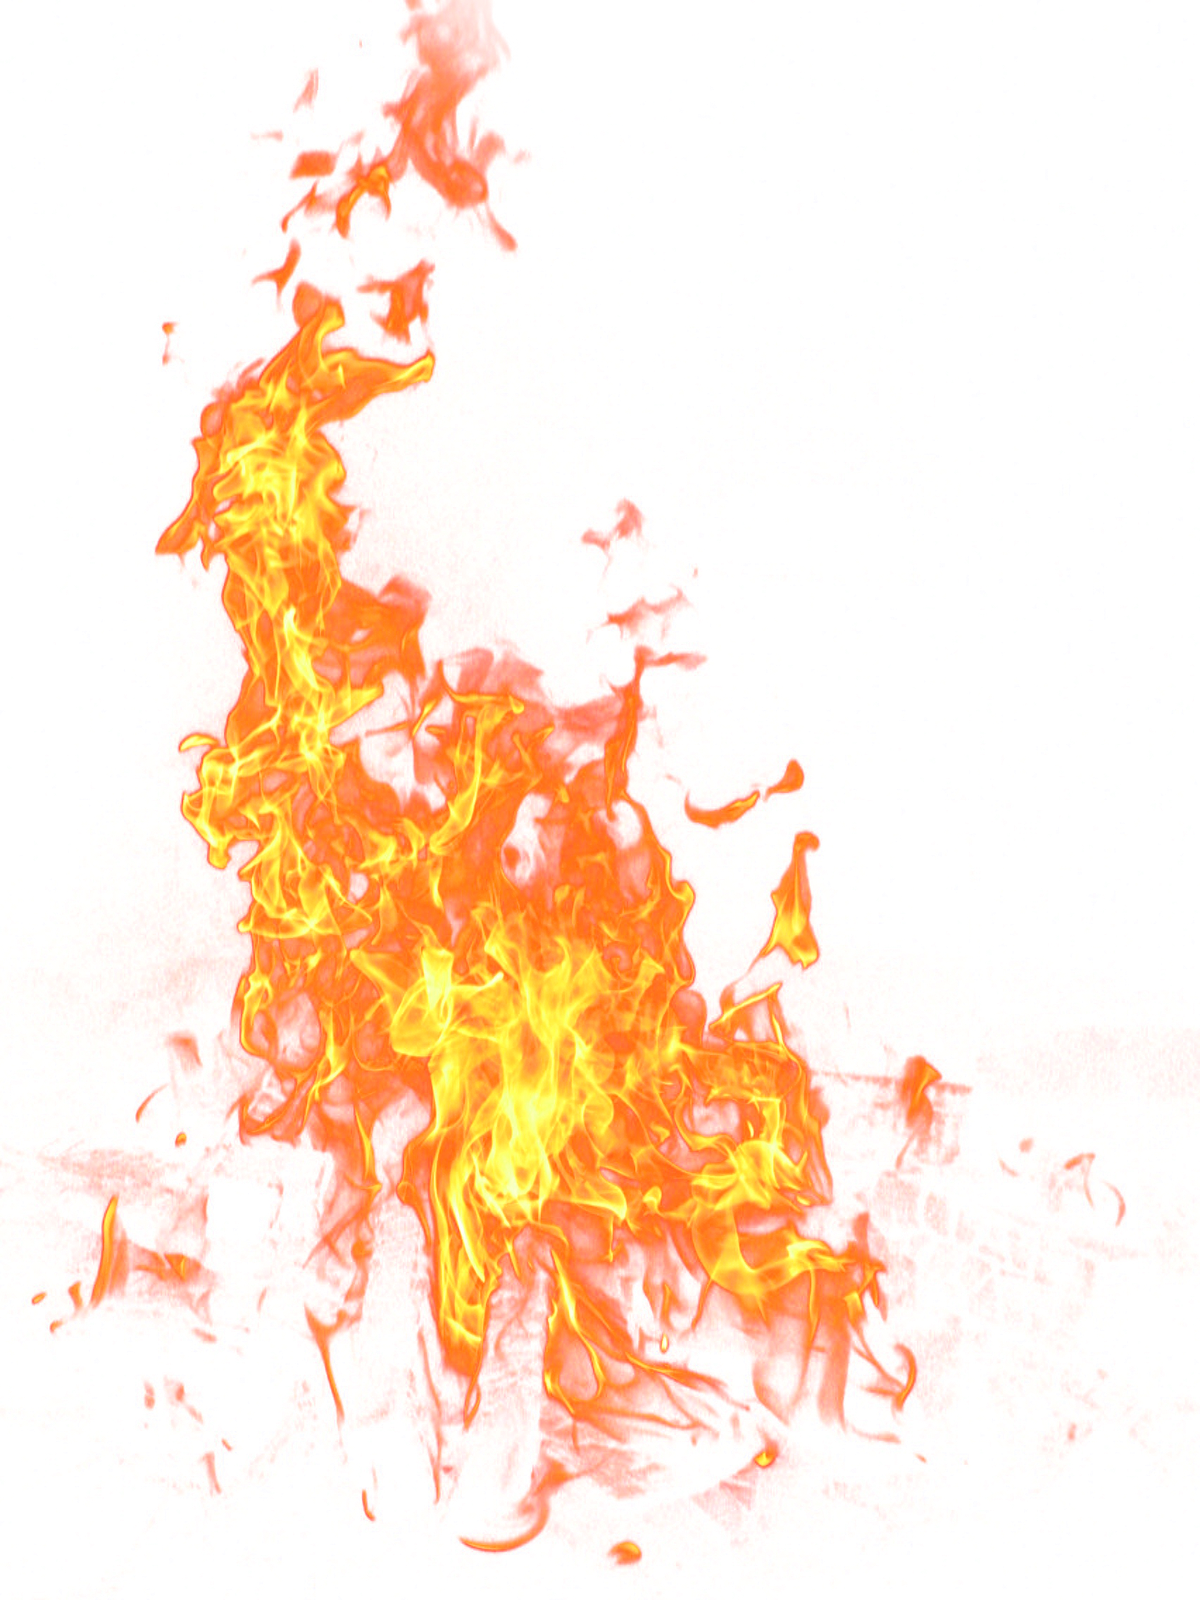 Flames png. Fire image purepng free